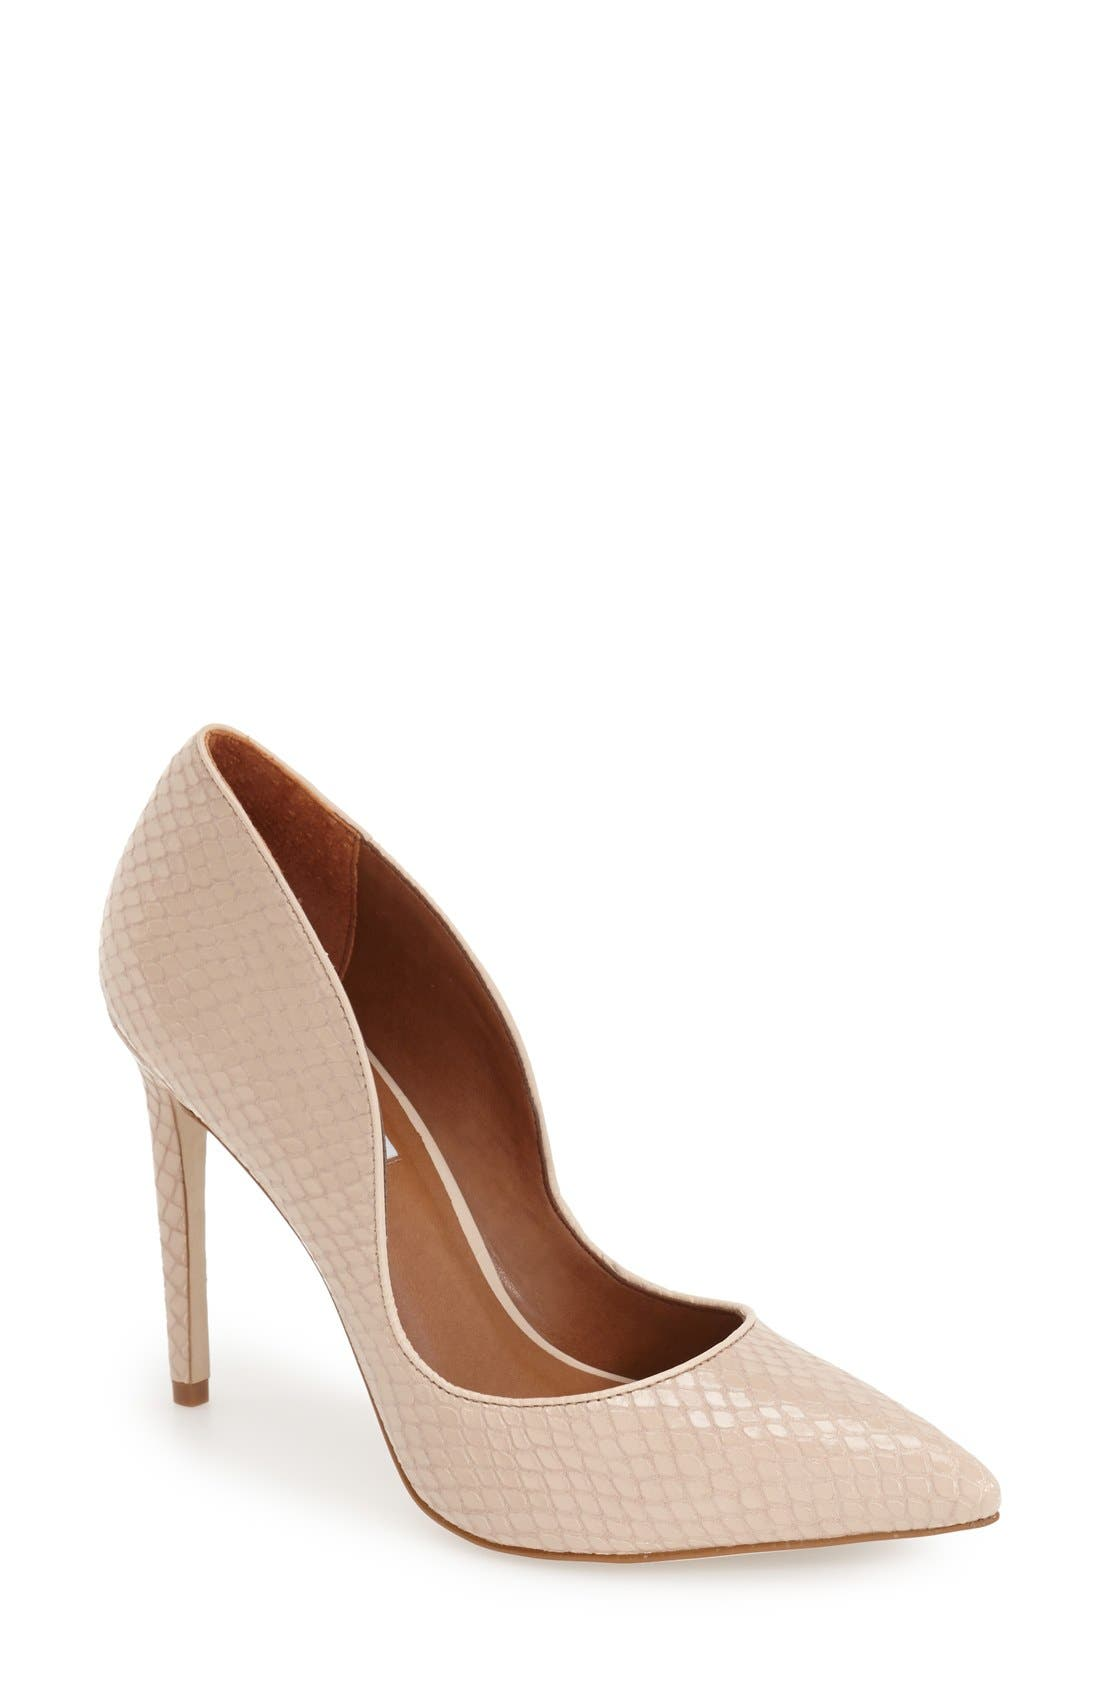 Alternate Image 1 Selected - Steve Madden 'Dipper' Pump (Women)